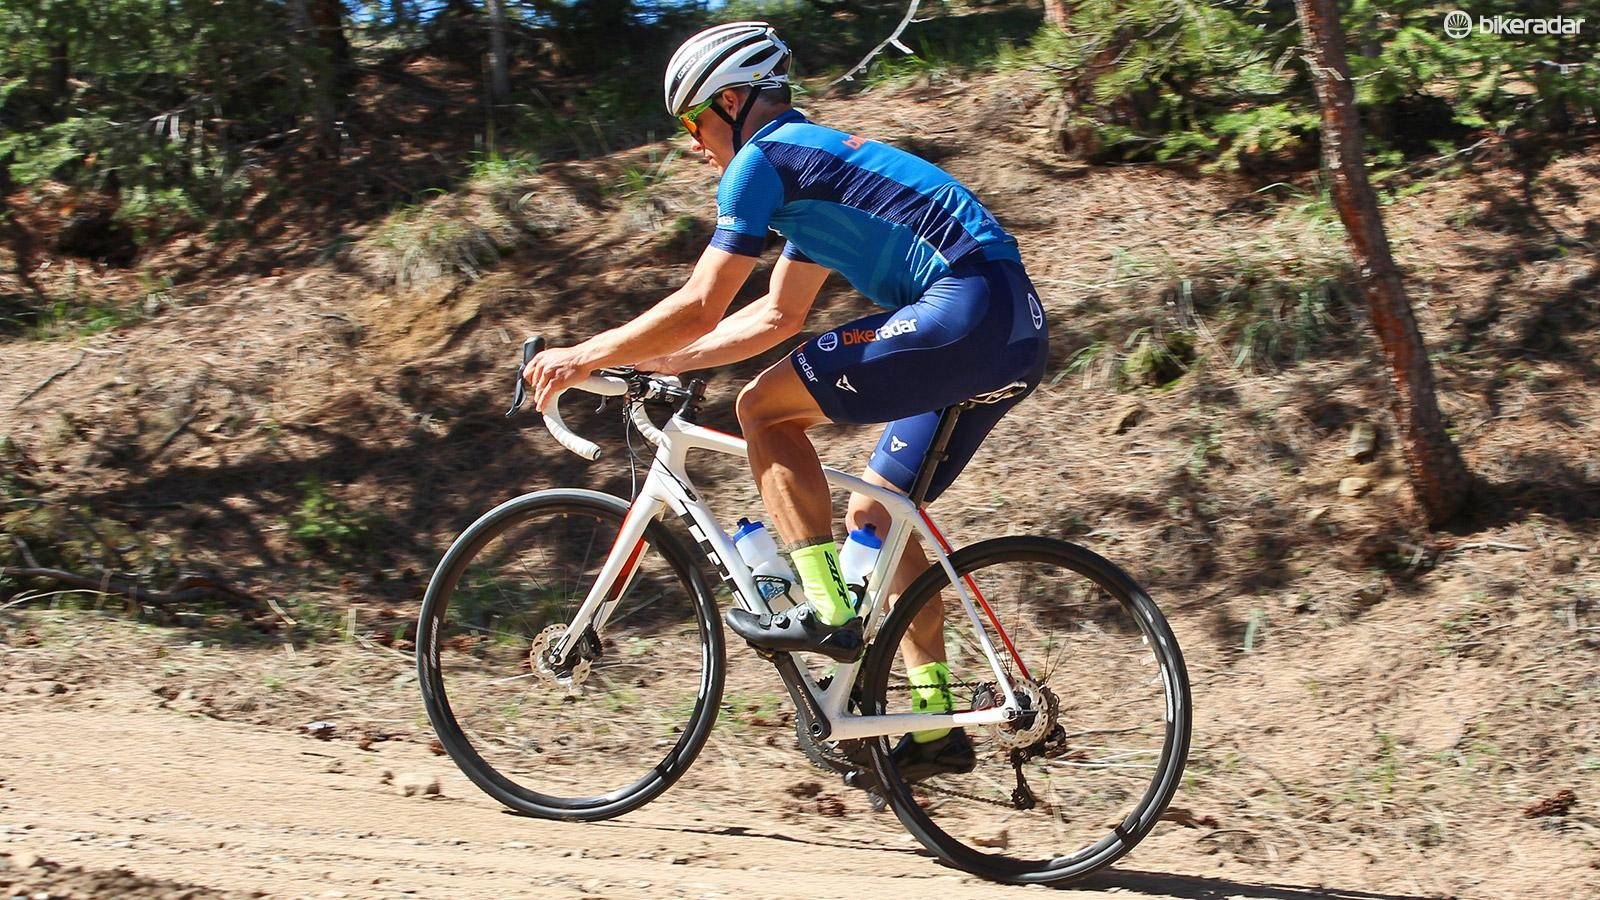 We're testing out Trek's Domane SLR 7 Disc on tarmac, gravel, and every bumpy, busted-up road in between